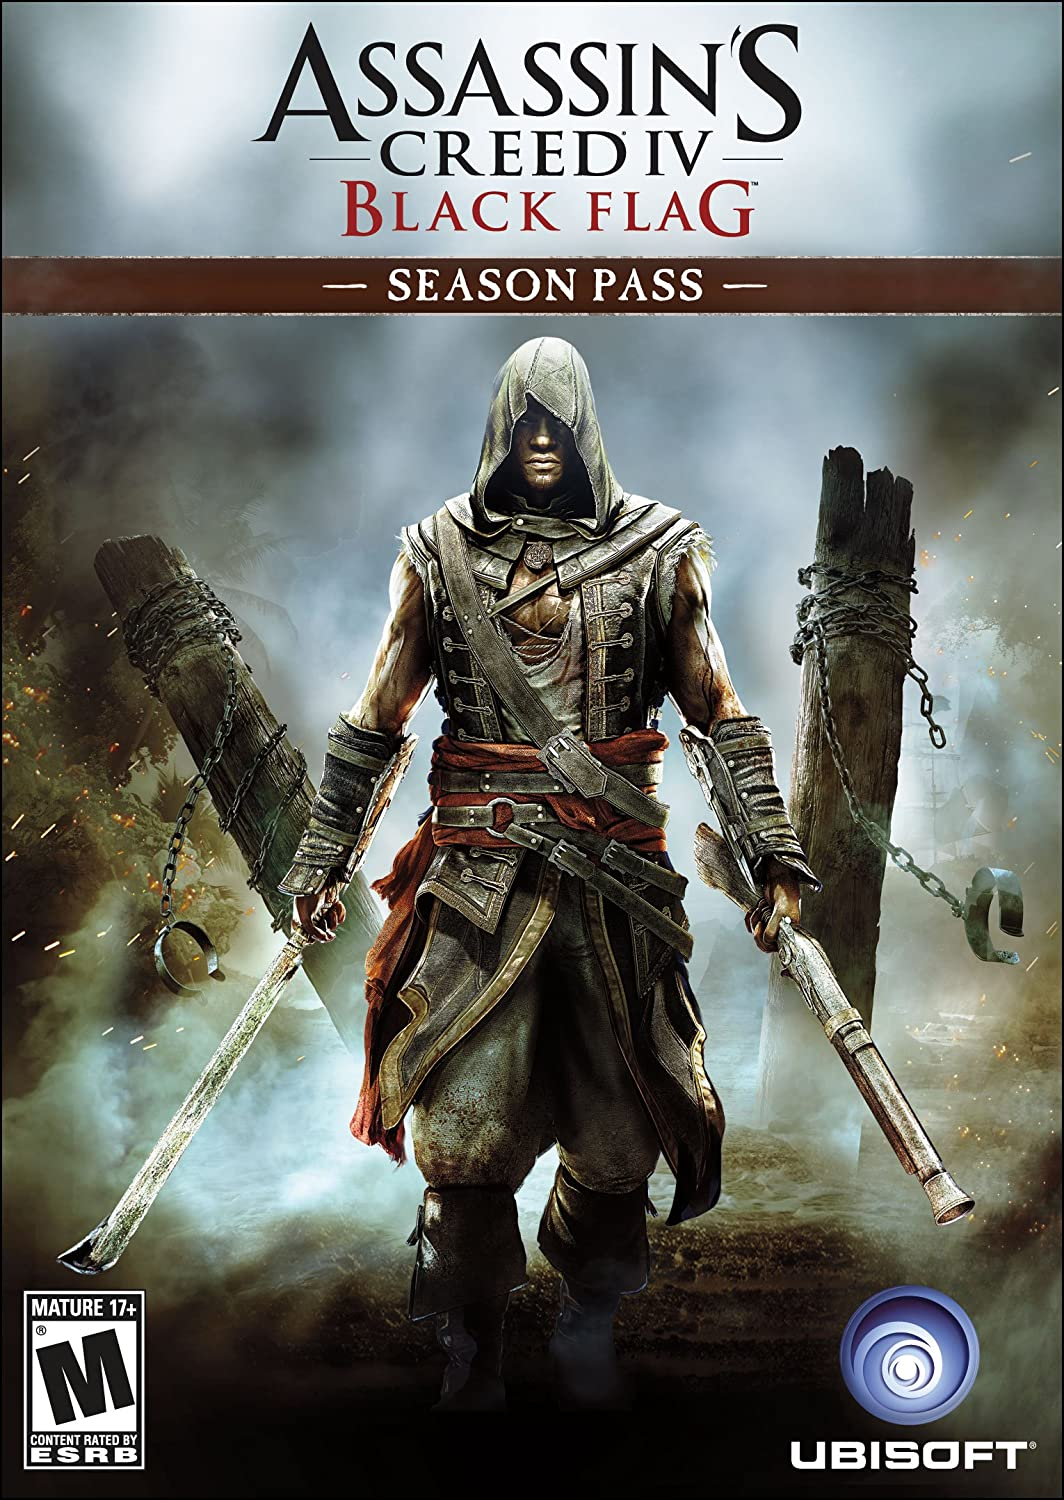 Where are the saveings on the Assassins Creed